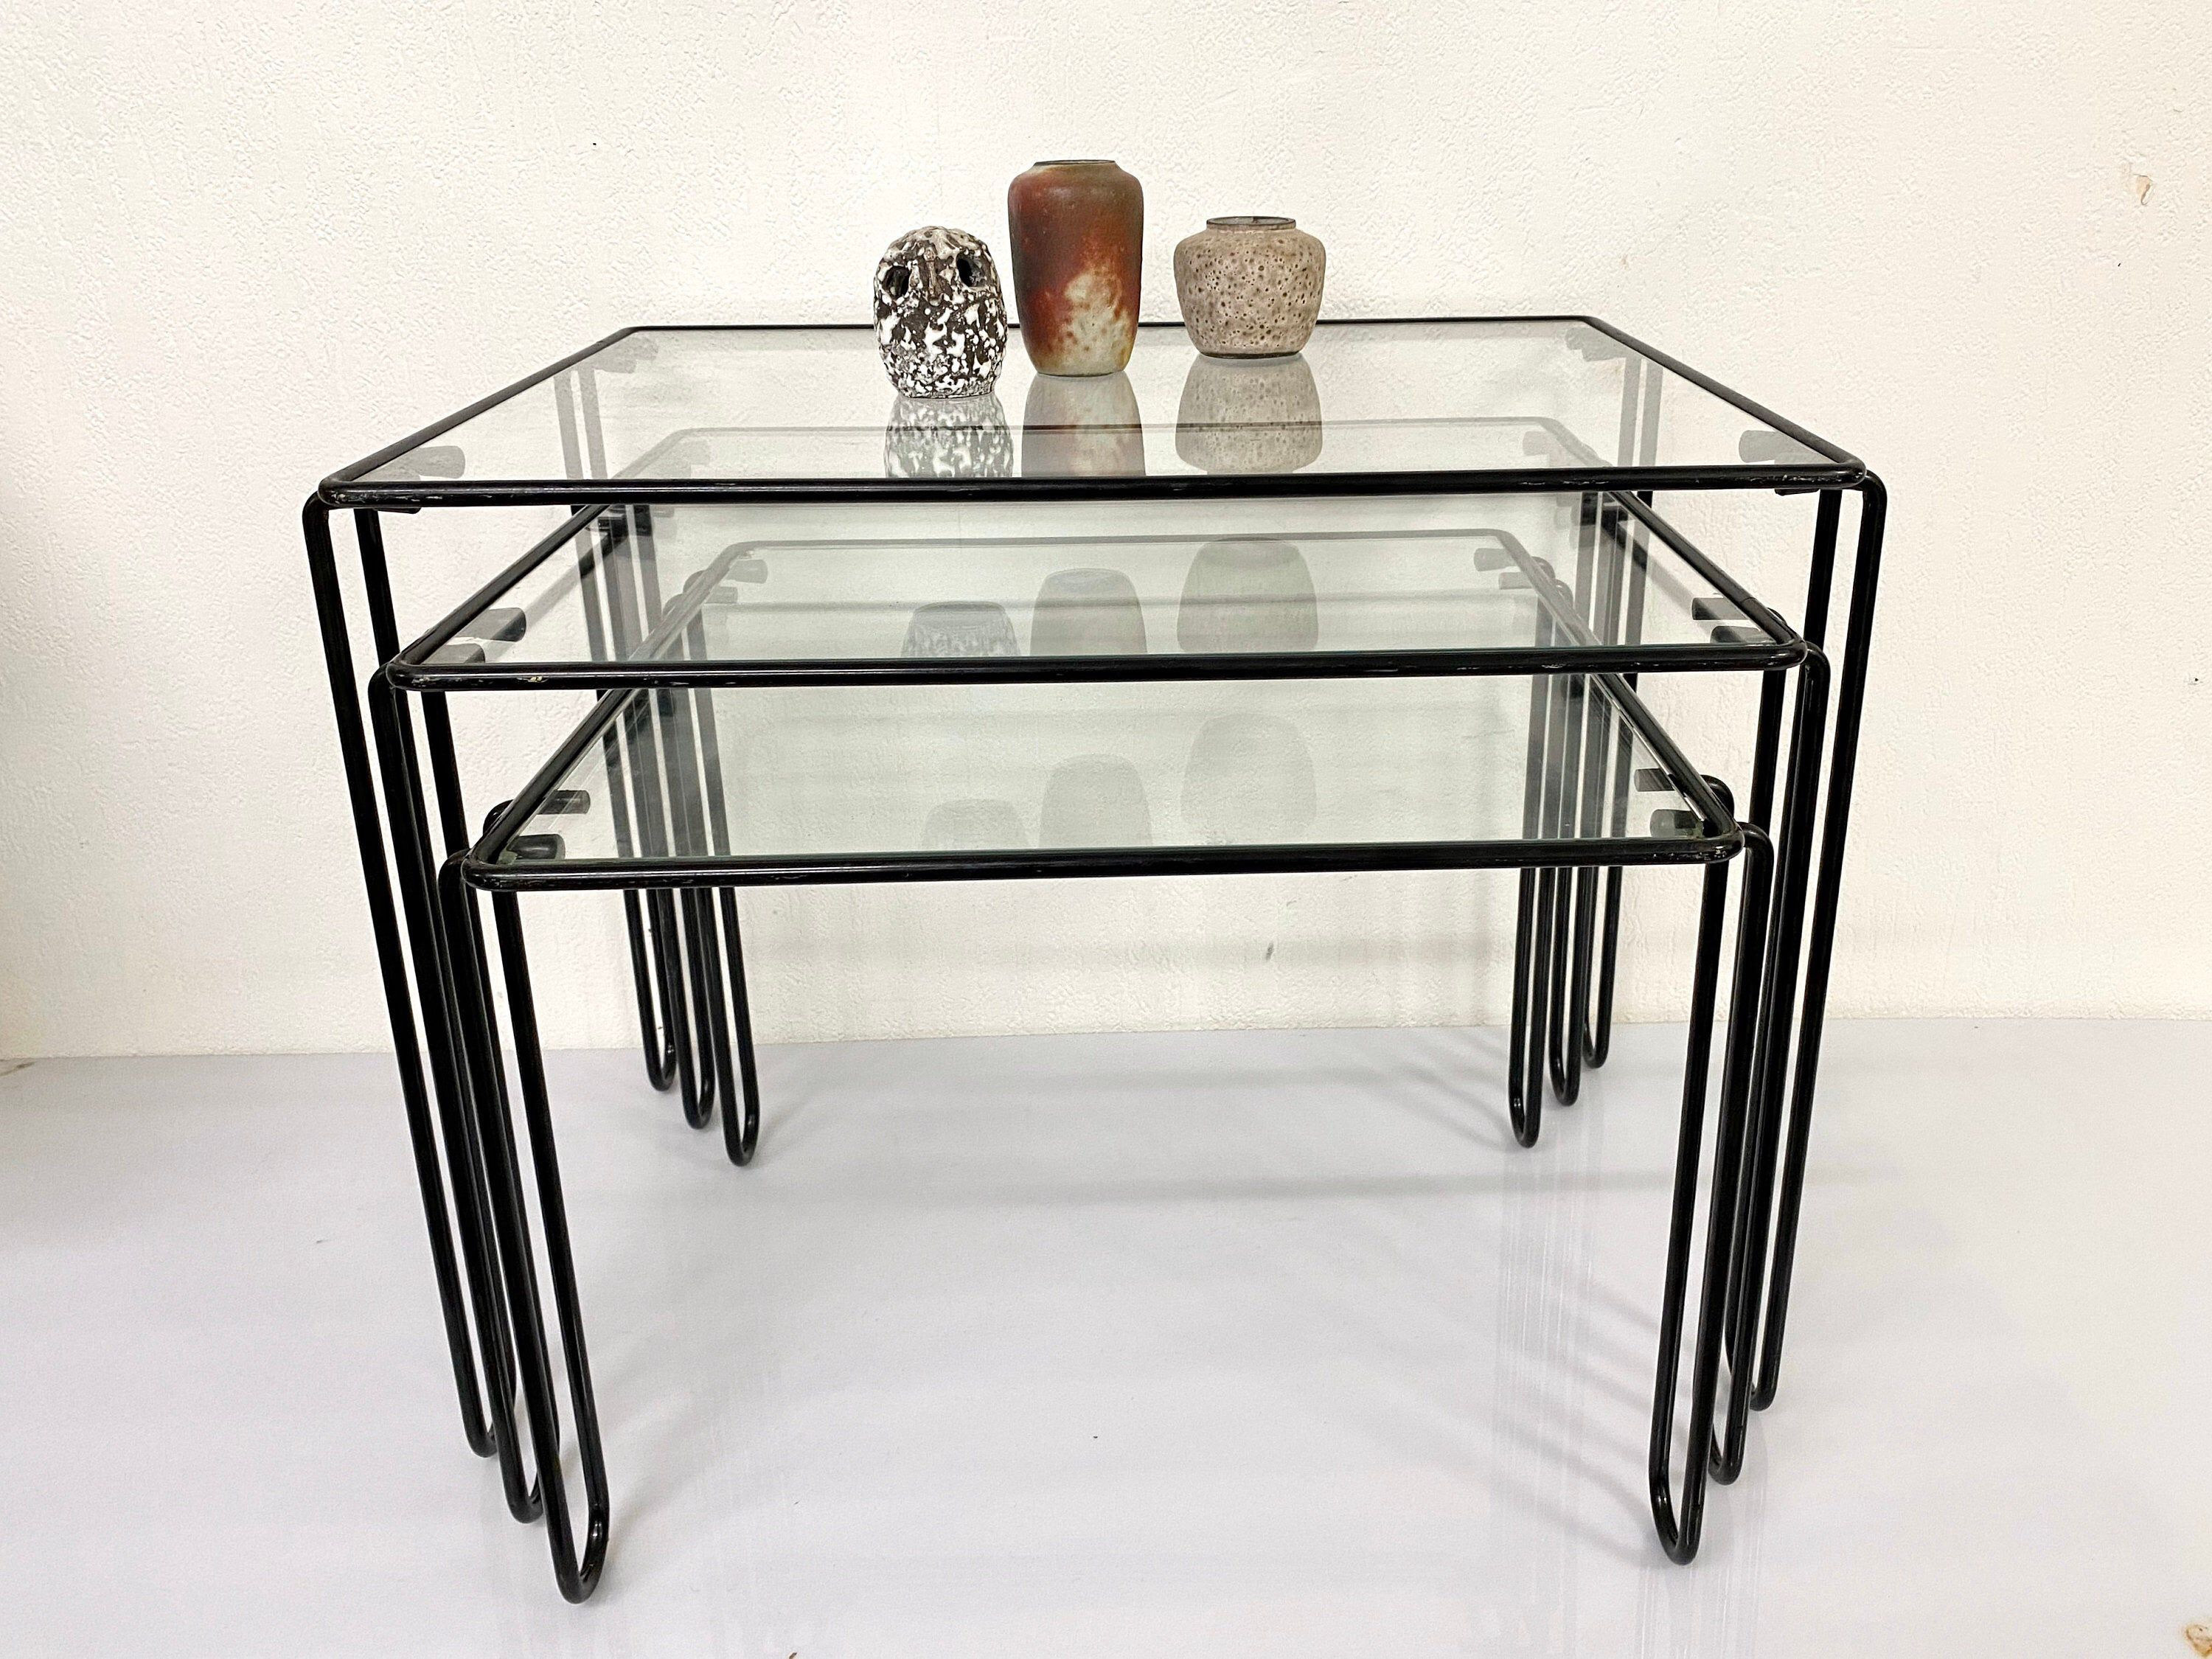 Vintage Nesting Tables With Loop Legs Pilastro Style Wire Etsy Nesting Tables Table Glass Top [ 2250 x 3000 Pixel ]